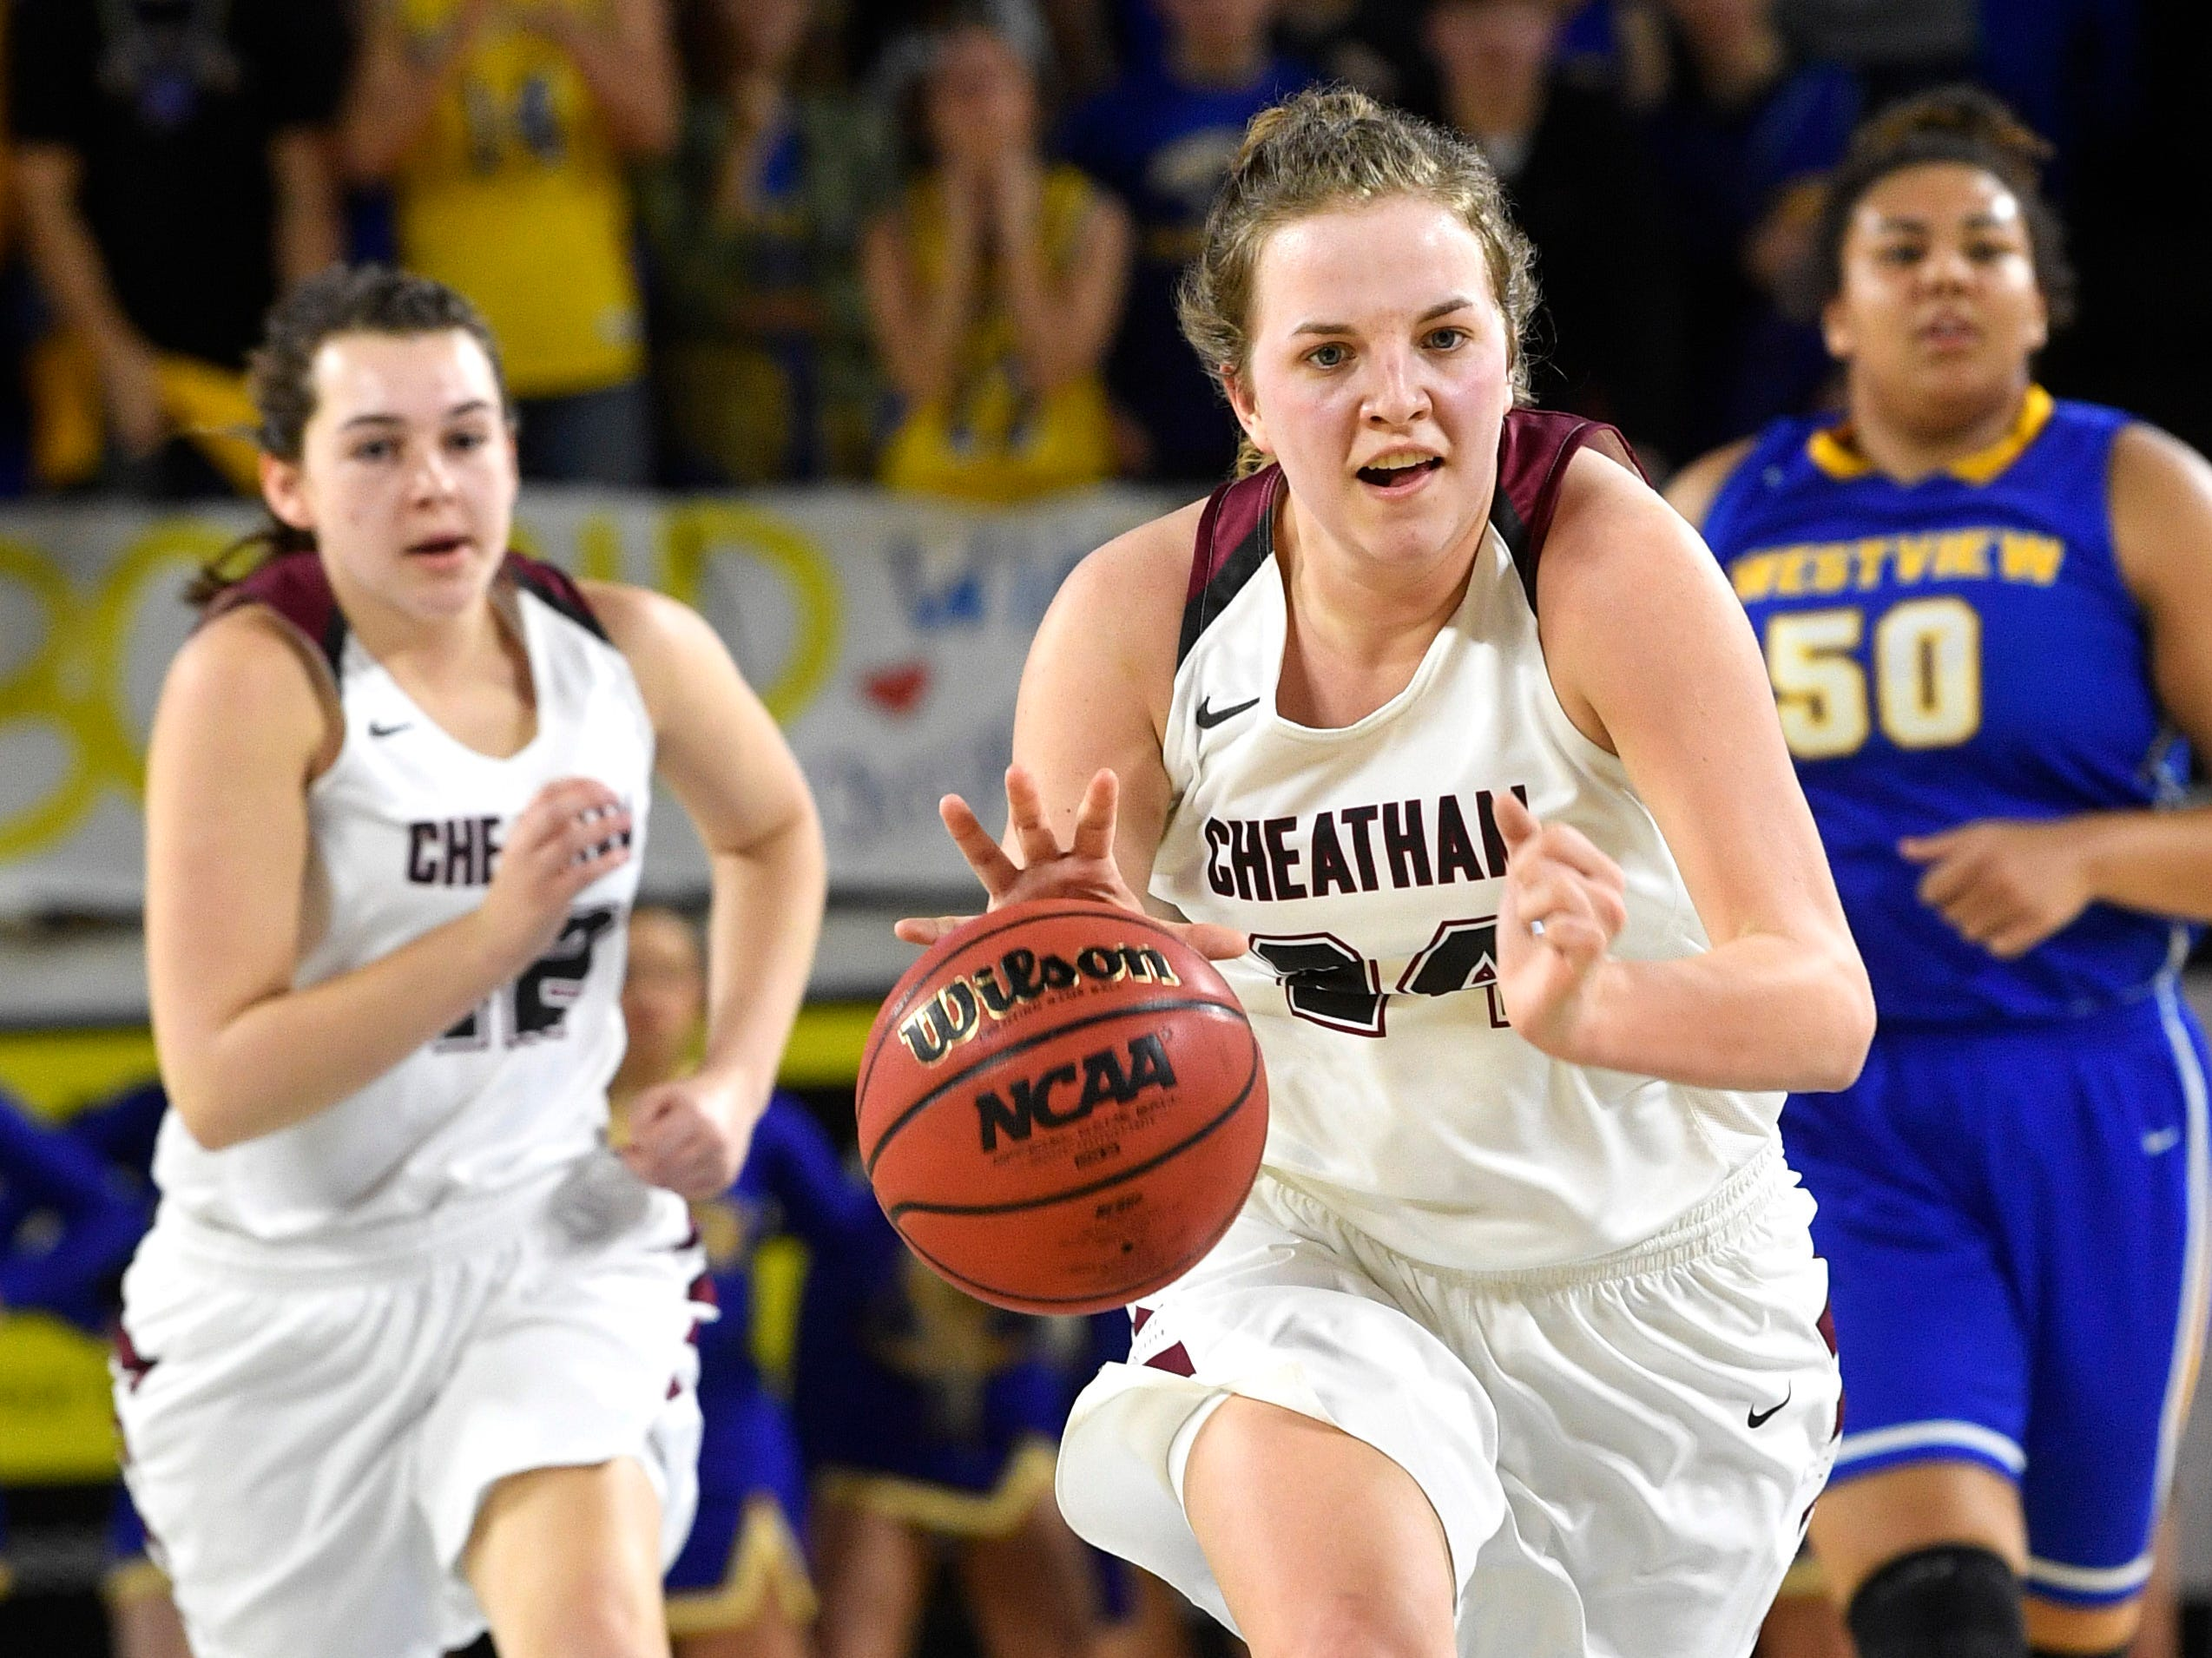 Cheatham County's Alli Douglas (24) takes the ball down the court As Cheatham County plays Westview in the Class AA Championship Saturday, March 9, 2019, in Murfreesboro, Tenn.